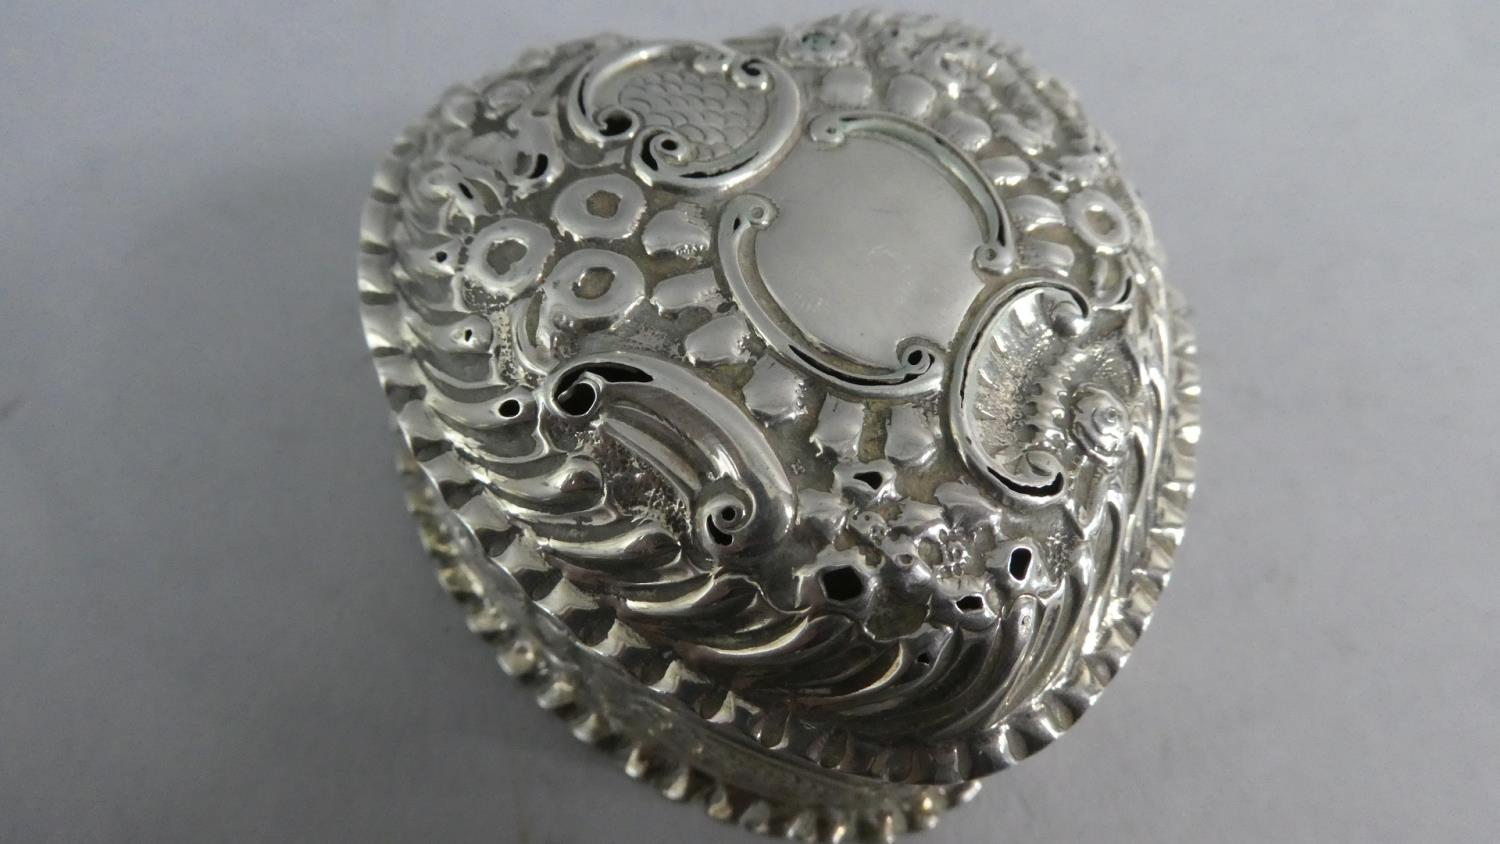 Two Heart Shaped Silver Boxes and a Silver Heart Shaped Pin Dish - Image 6 of 10